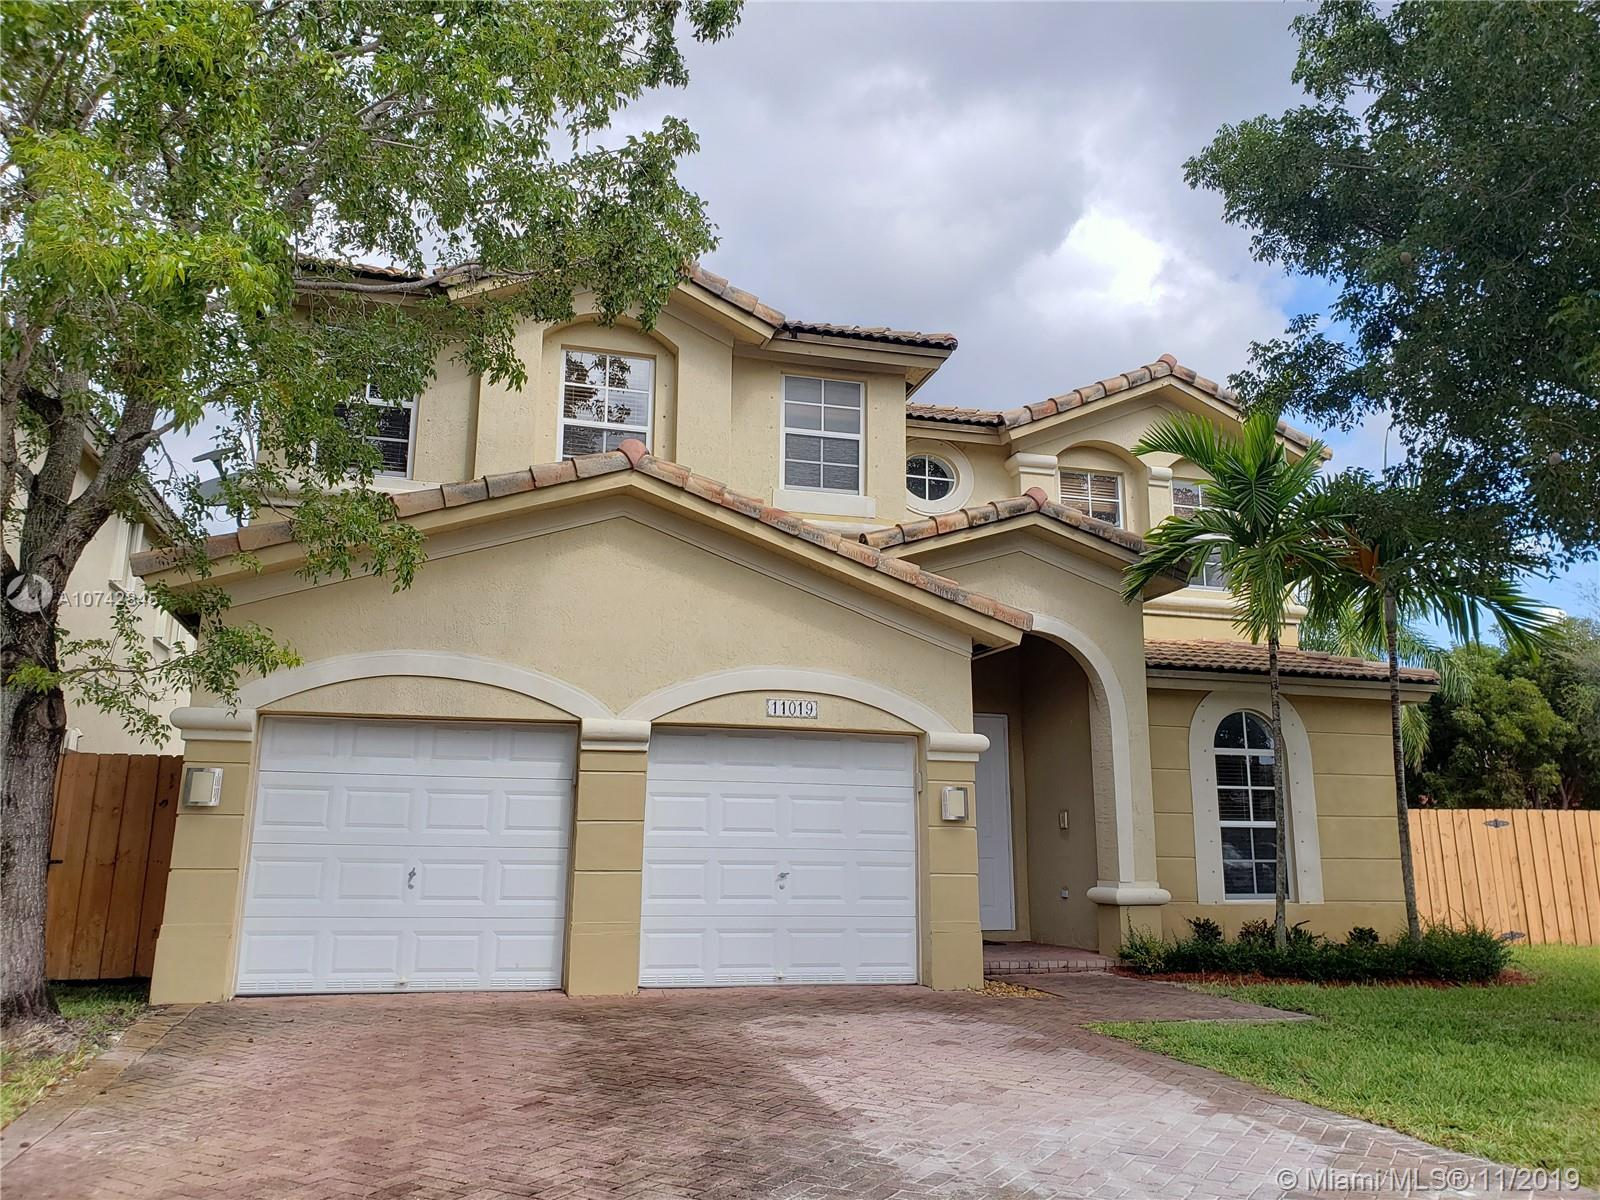 11019 NW 84th St, Doral in Miami-dade County County, FL 33178 Home for Sale